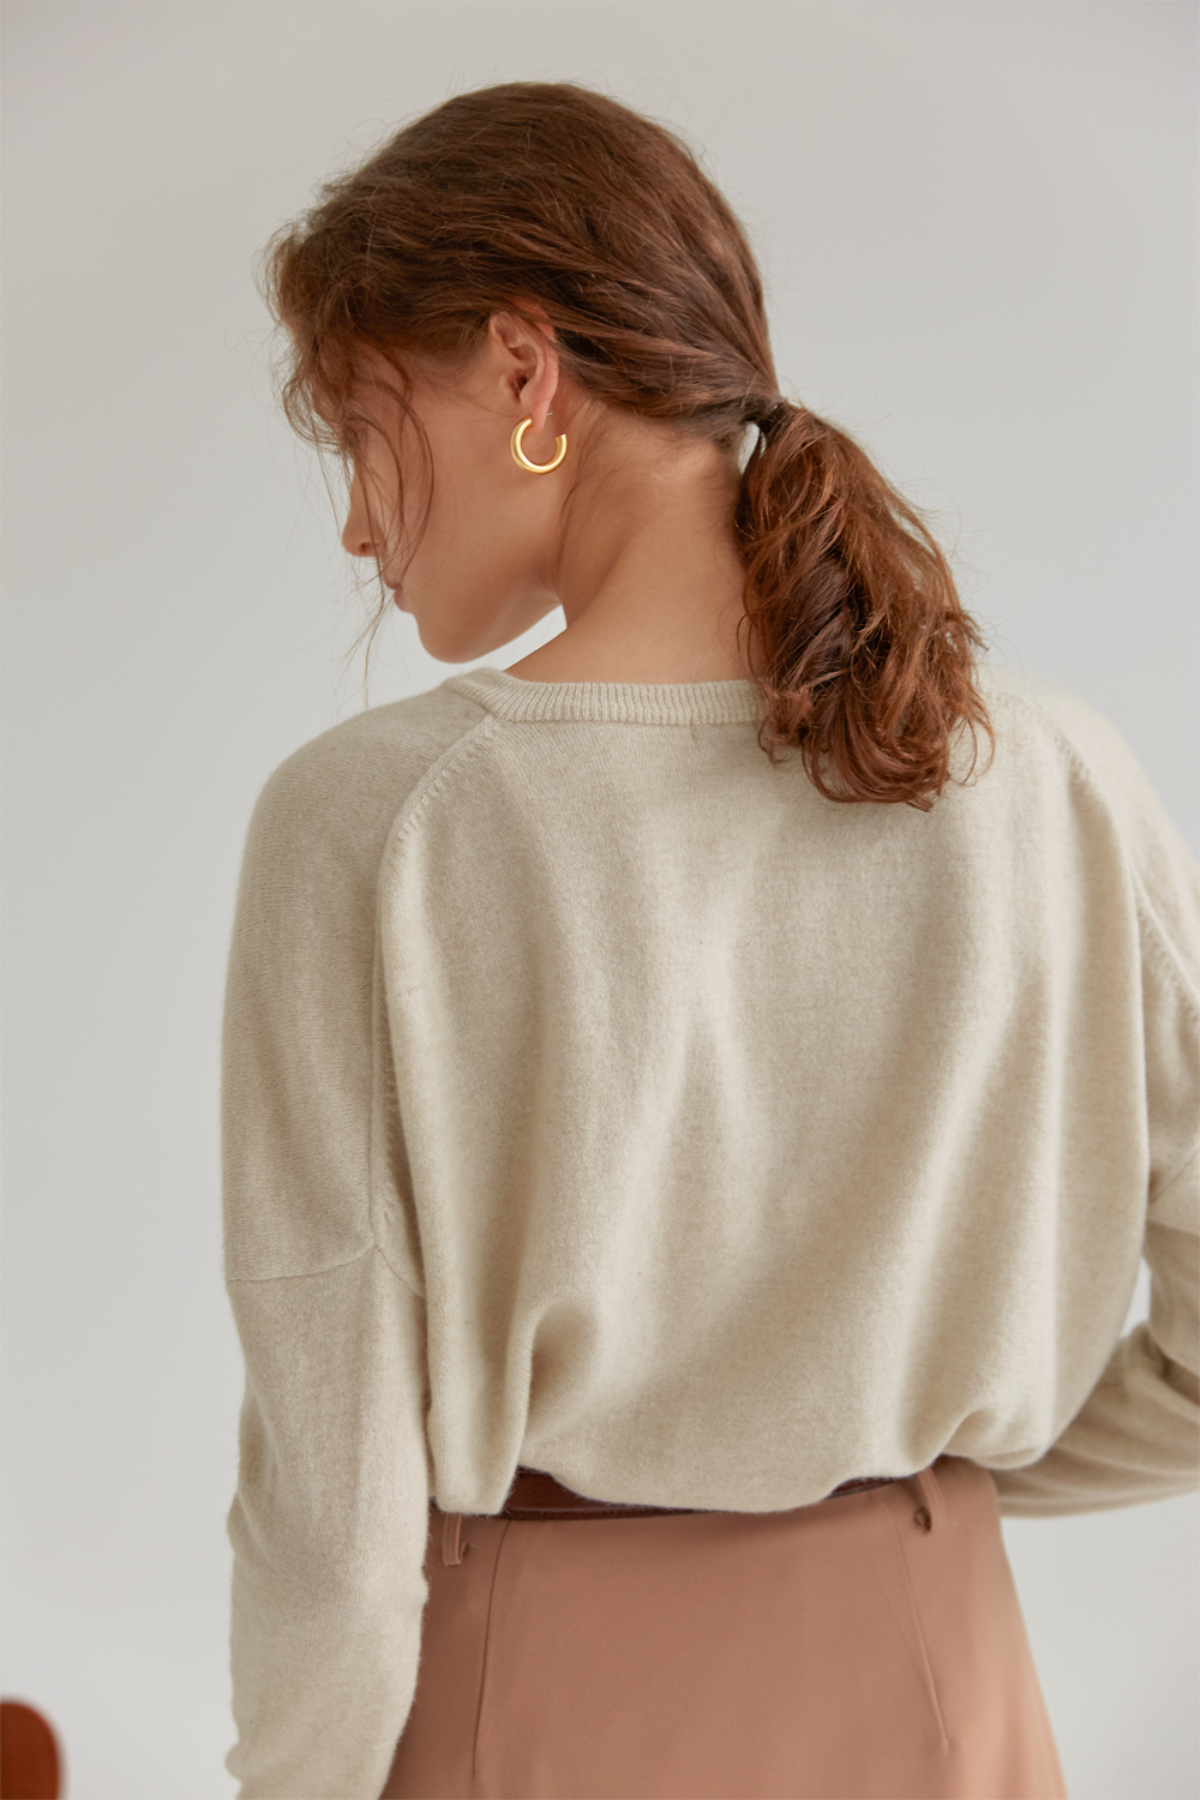 anthese rento cashmere v-neck knit, oatmeal (50%)